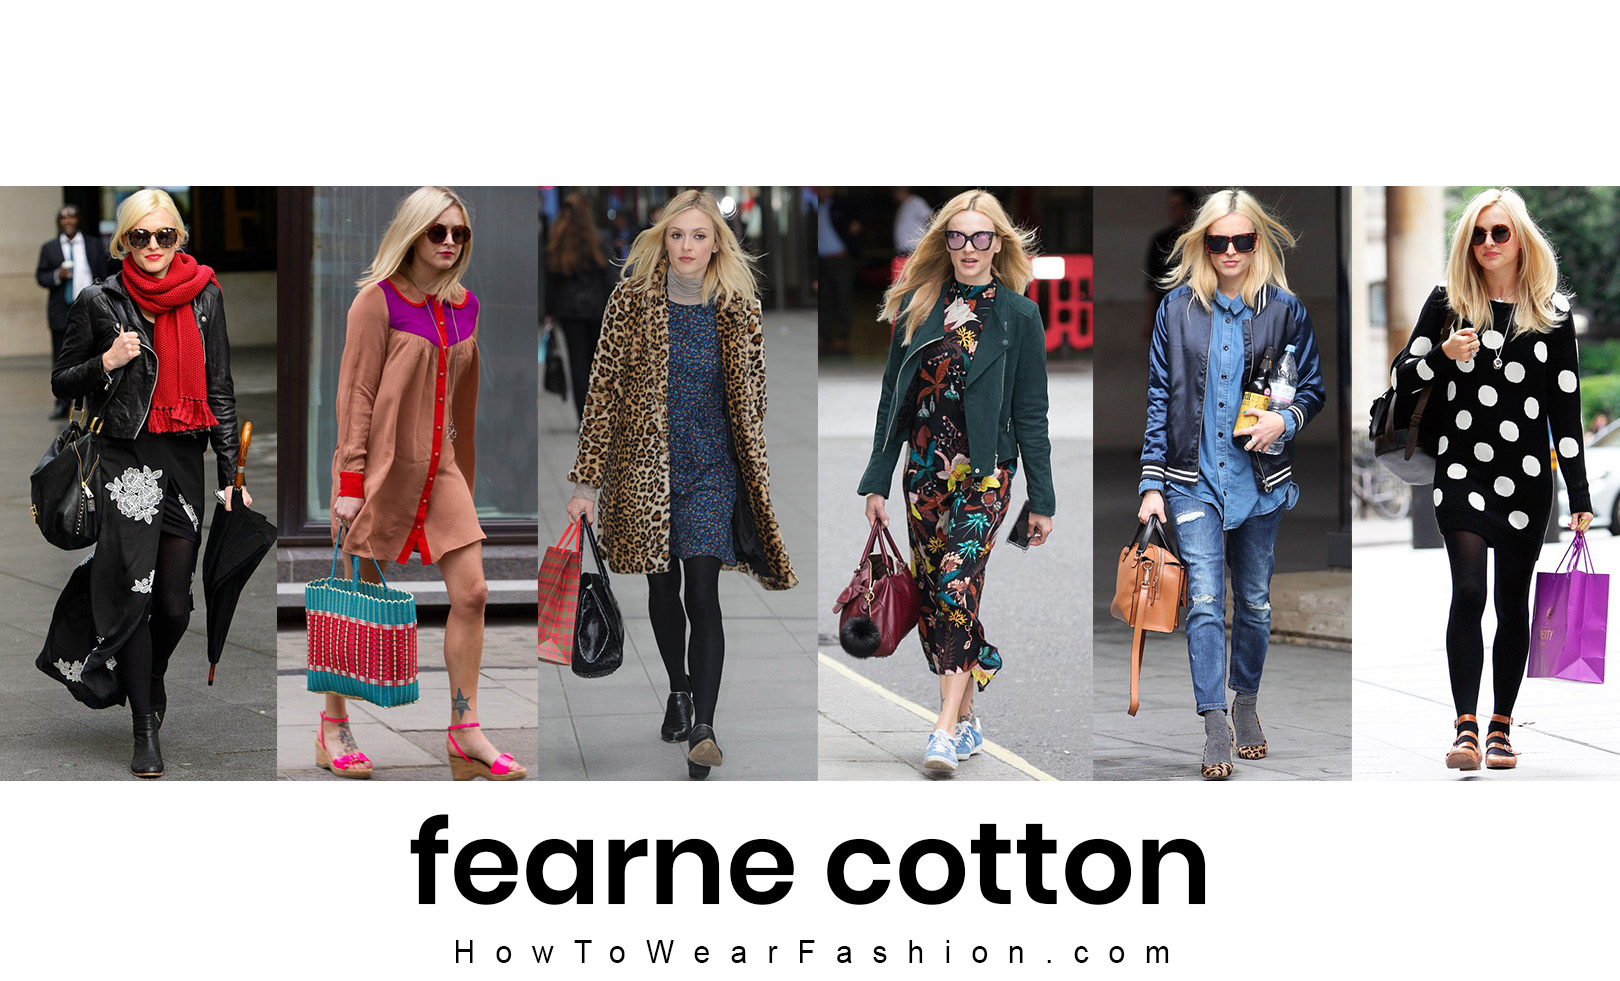 Fearne Cotton's fashion style! See all her best outfit looks here.